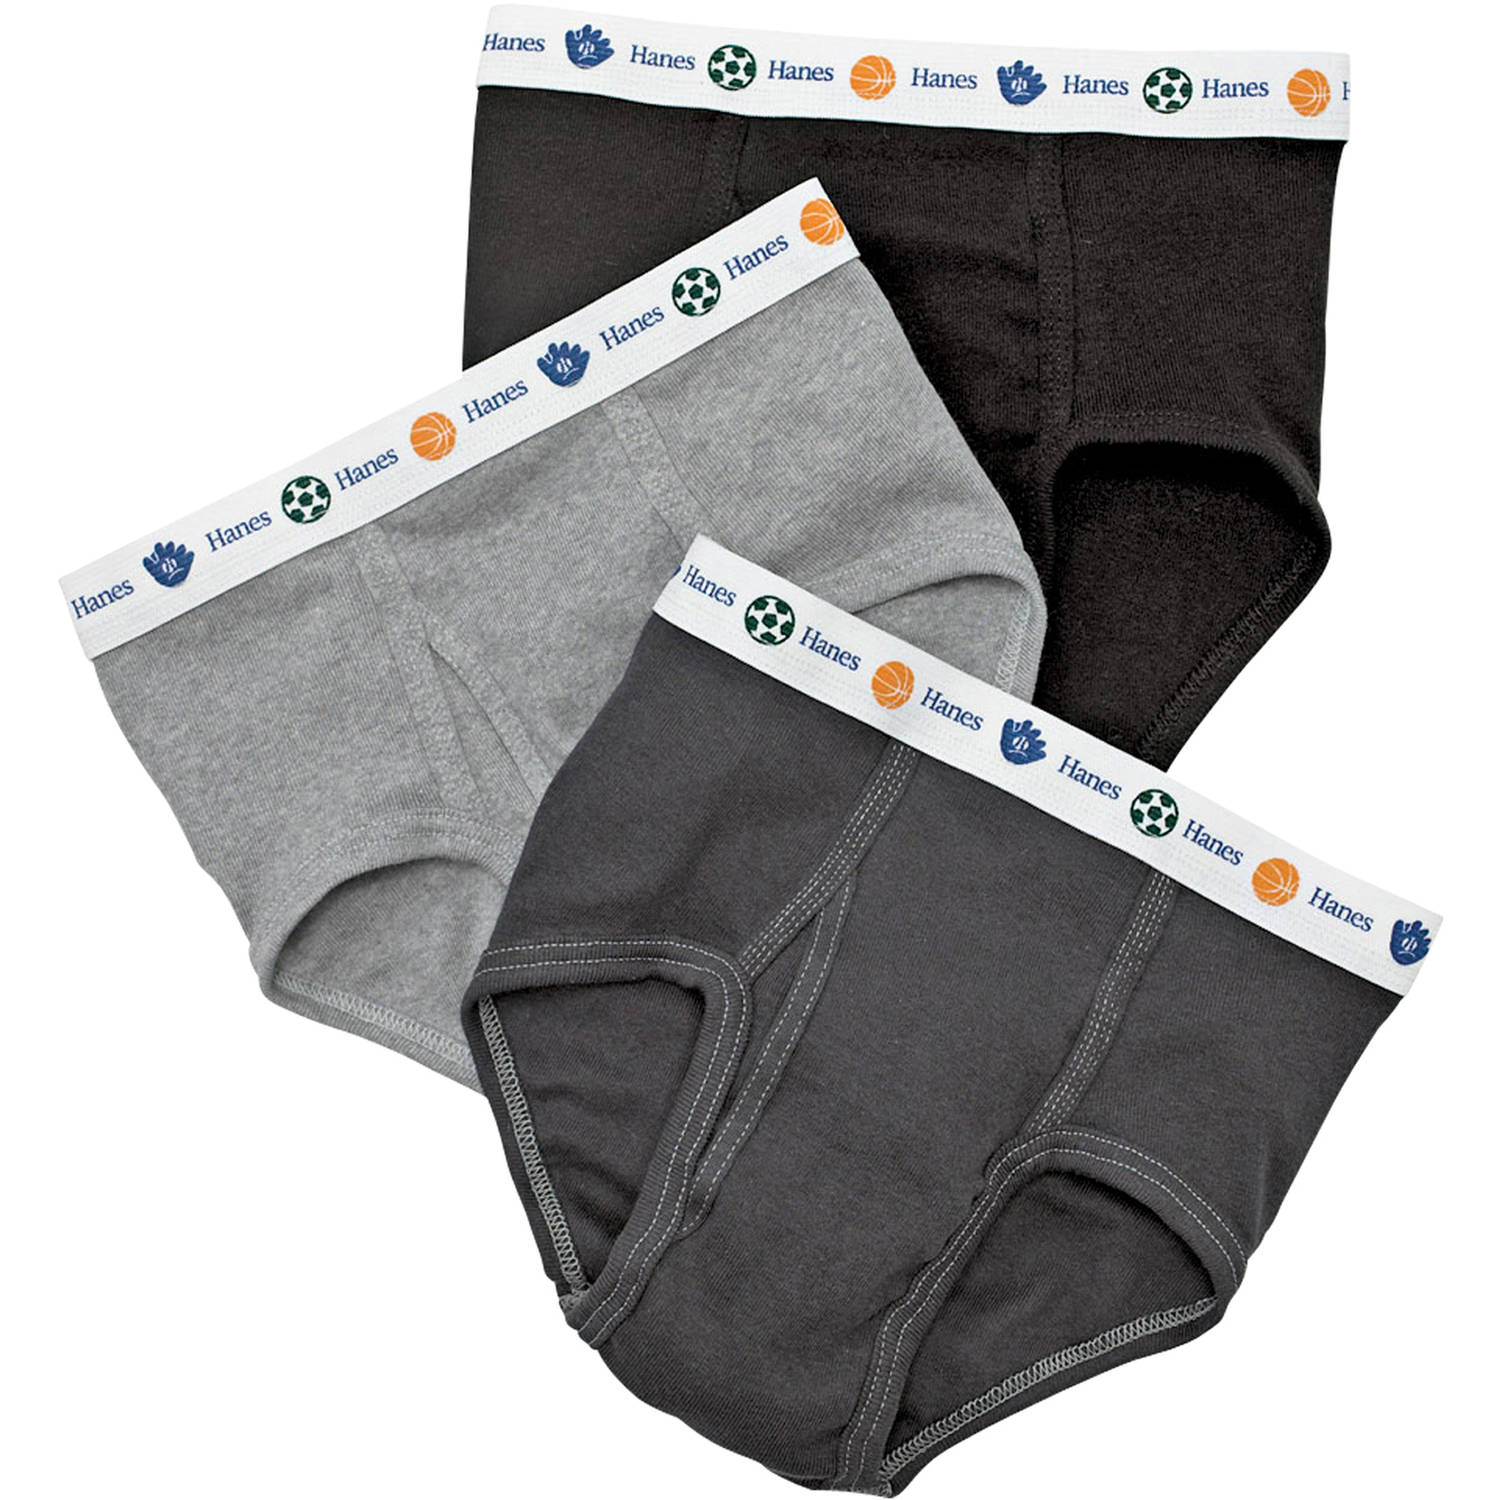 Hanes Toddler Boy Briefs, 5-Pack